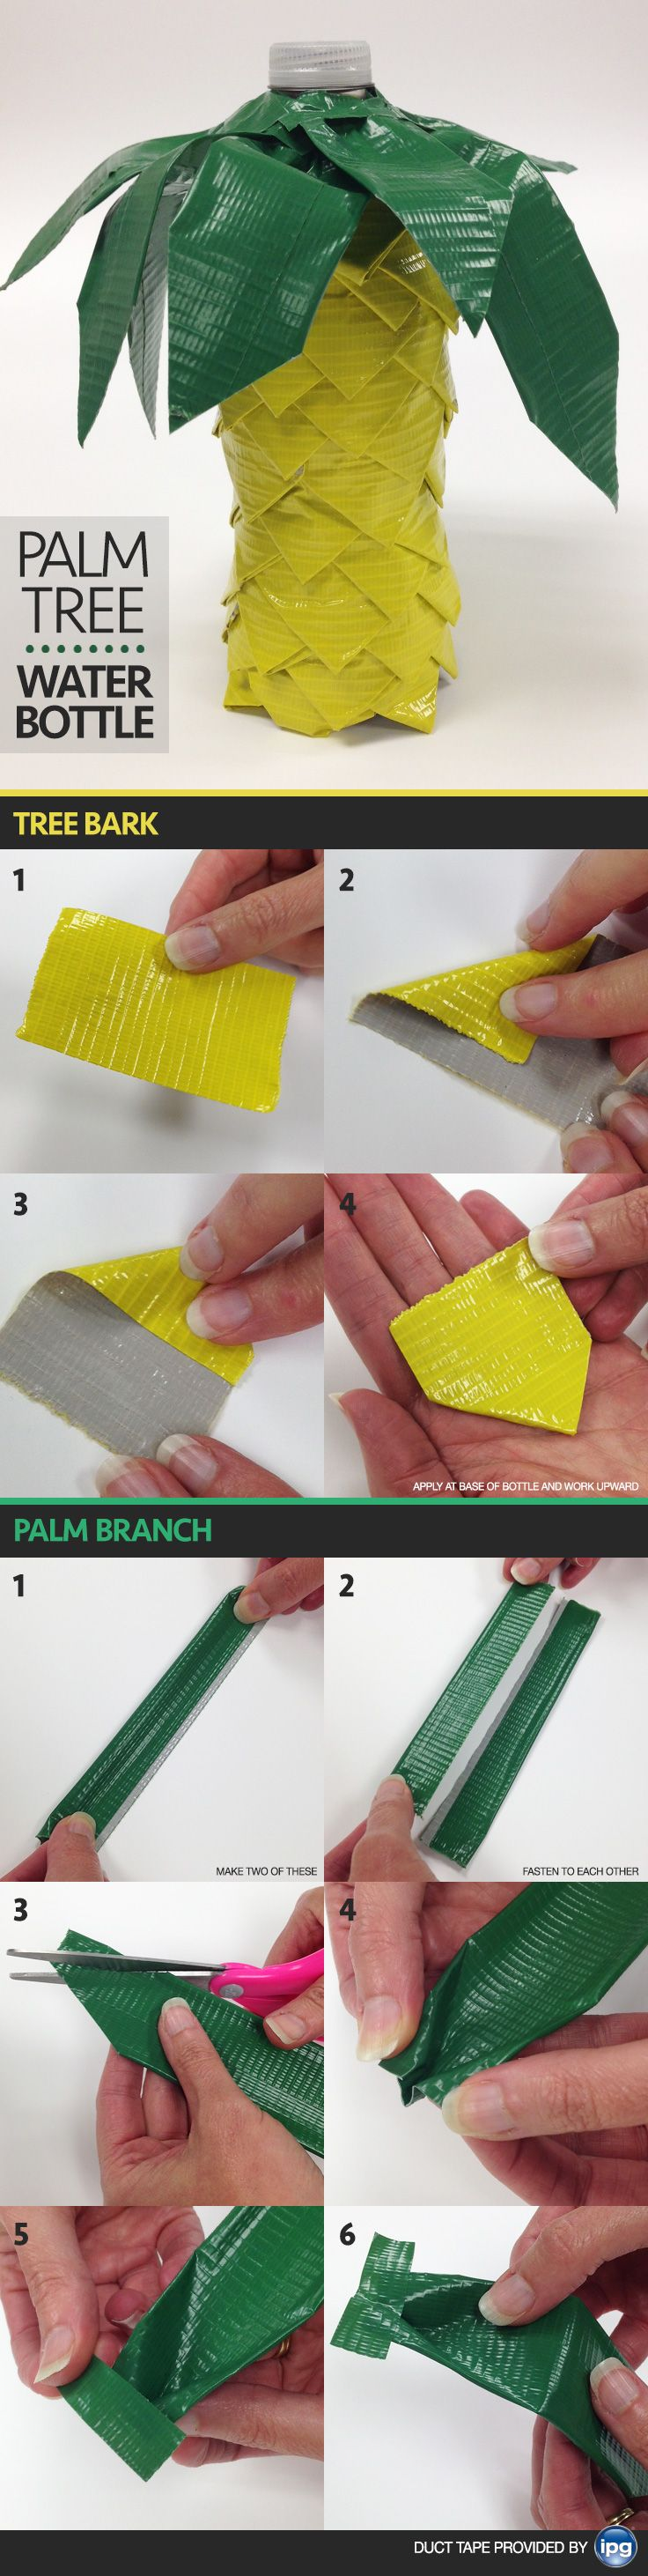 """Tropical party favors made with duct tape. Use a tall water bottle for a palm tree or a short water bottle for a pineapple! (10-20 minute craft). Search """"IPG duct tape"""" for affordable tape. #DIY"""